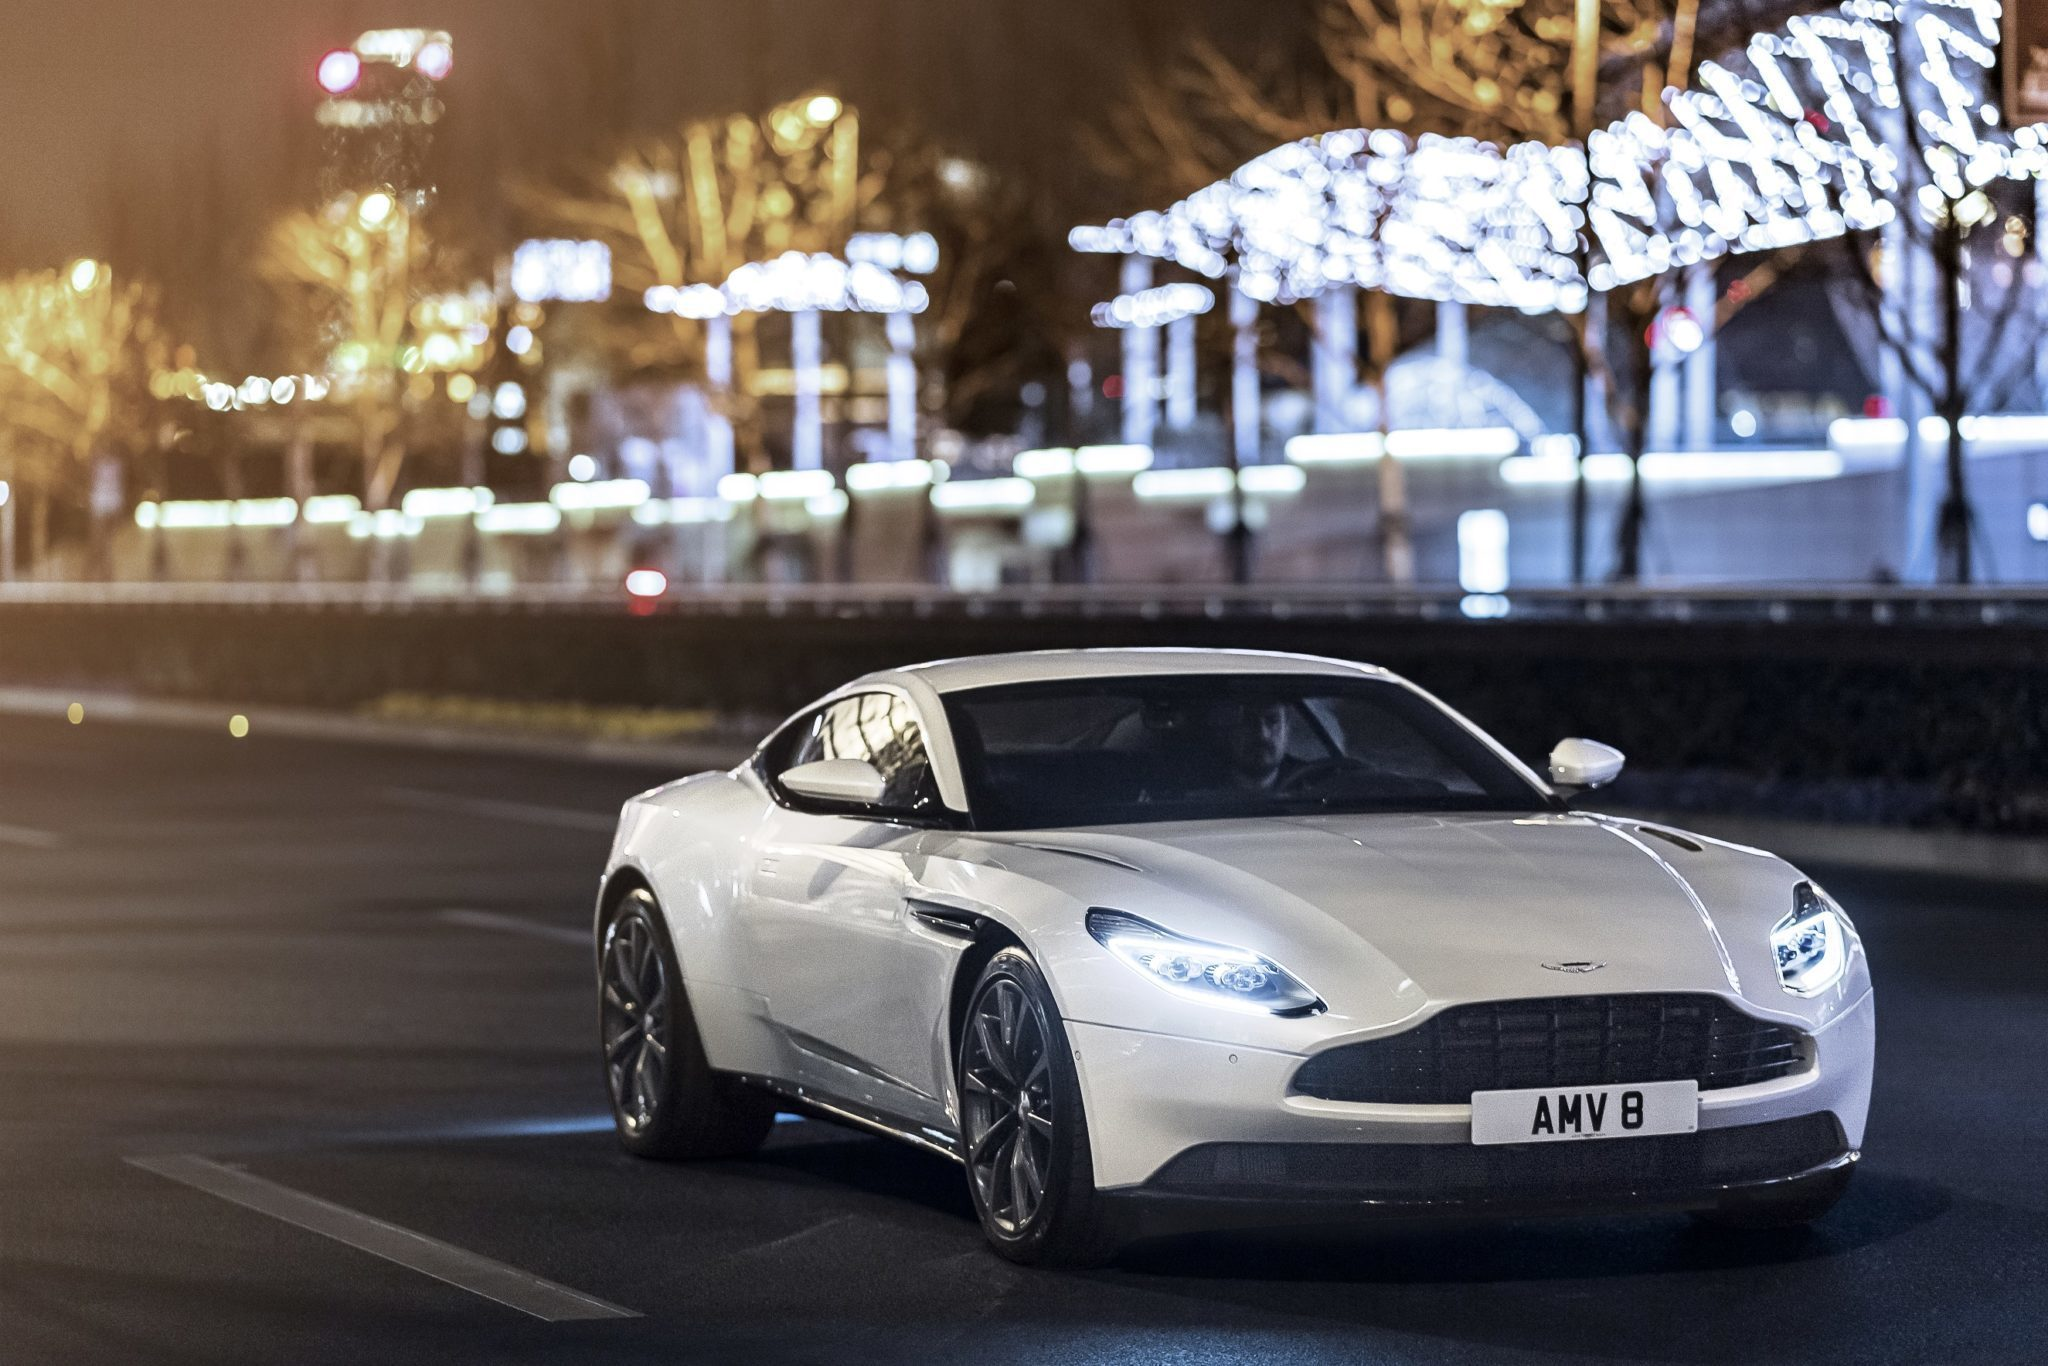 v8 db11 at goodwood – tag – auto breaking news